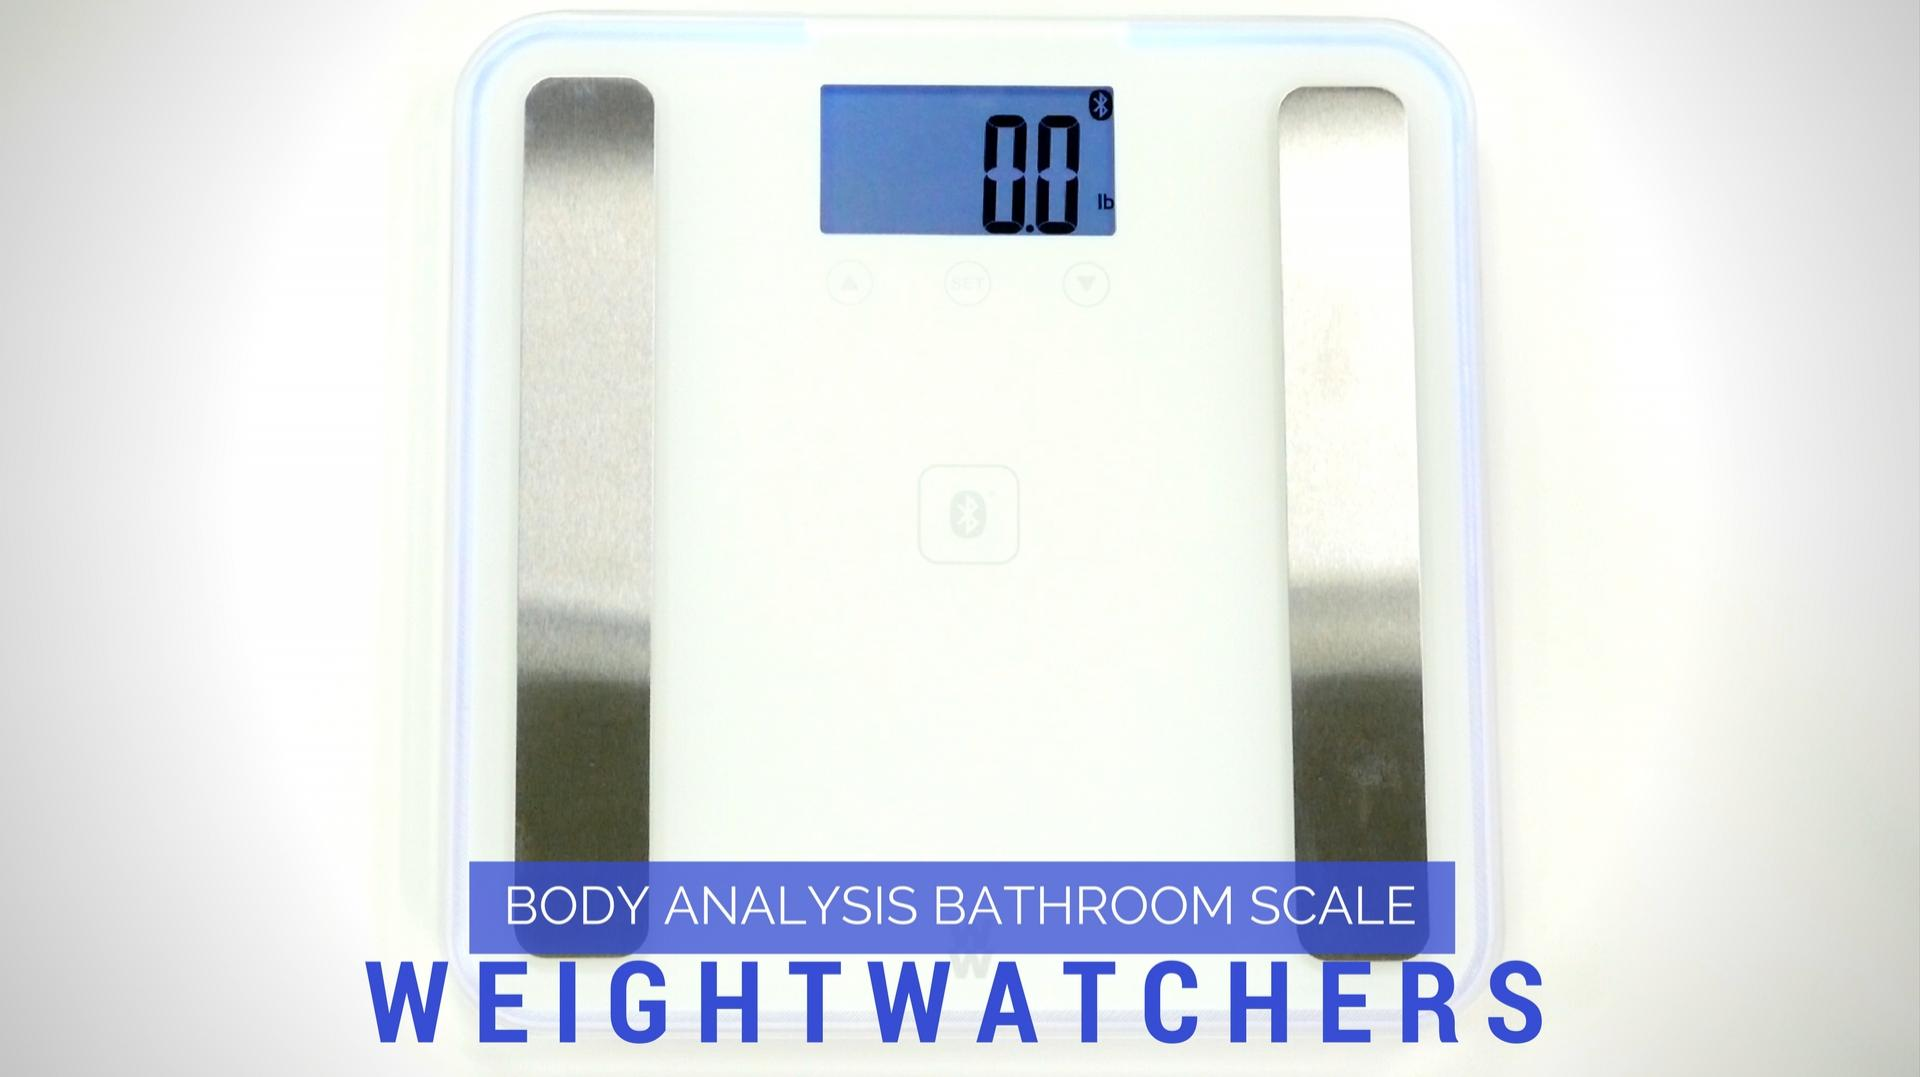 Weight Watchers Body Analysis Bathroom Scale